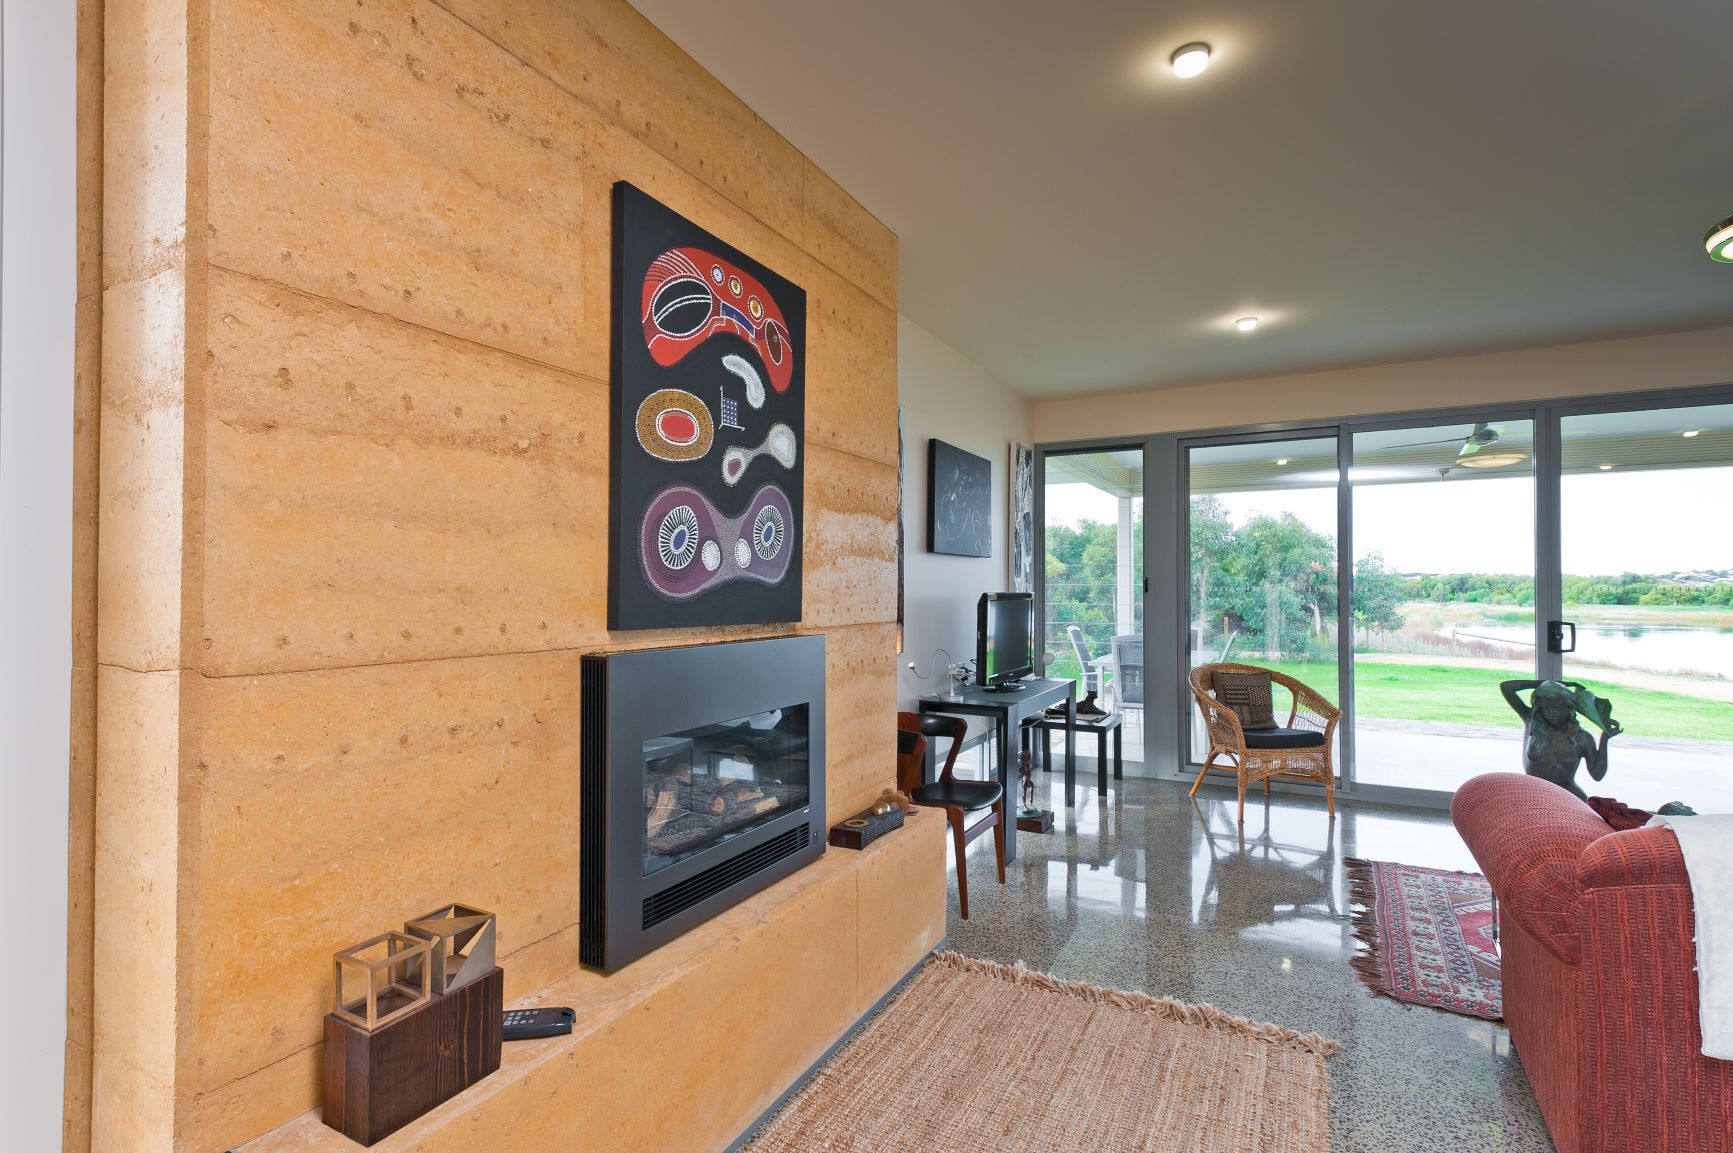 Custom Home, New Home, Family Home, Builders, Design, Beyond, Chiton, Fleurieu, Energy Efficient, Single Storey, Feature Wall, Fireplace, Large Windows, Sliding Doors